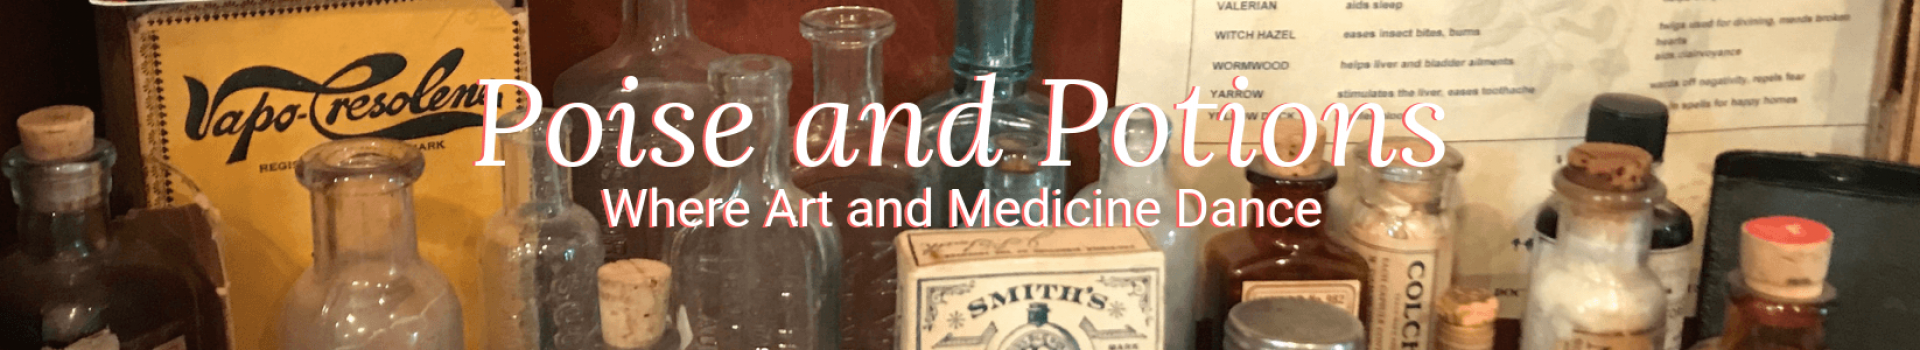 Poise and Potions Banner